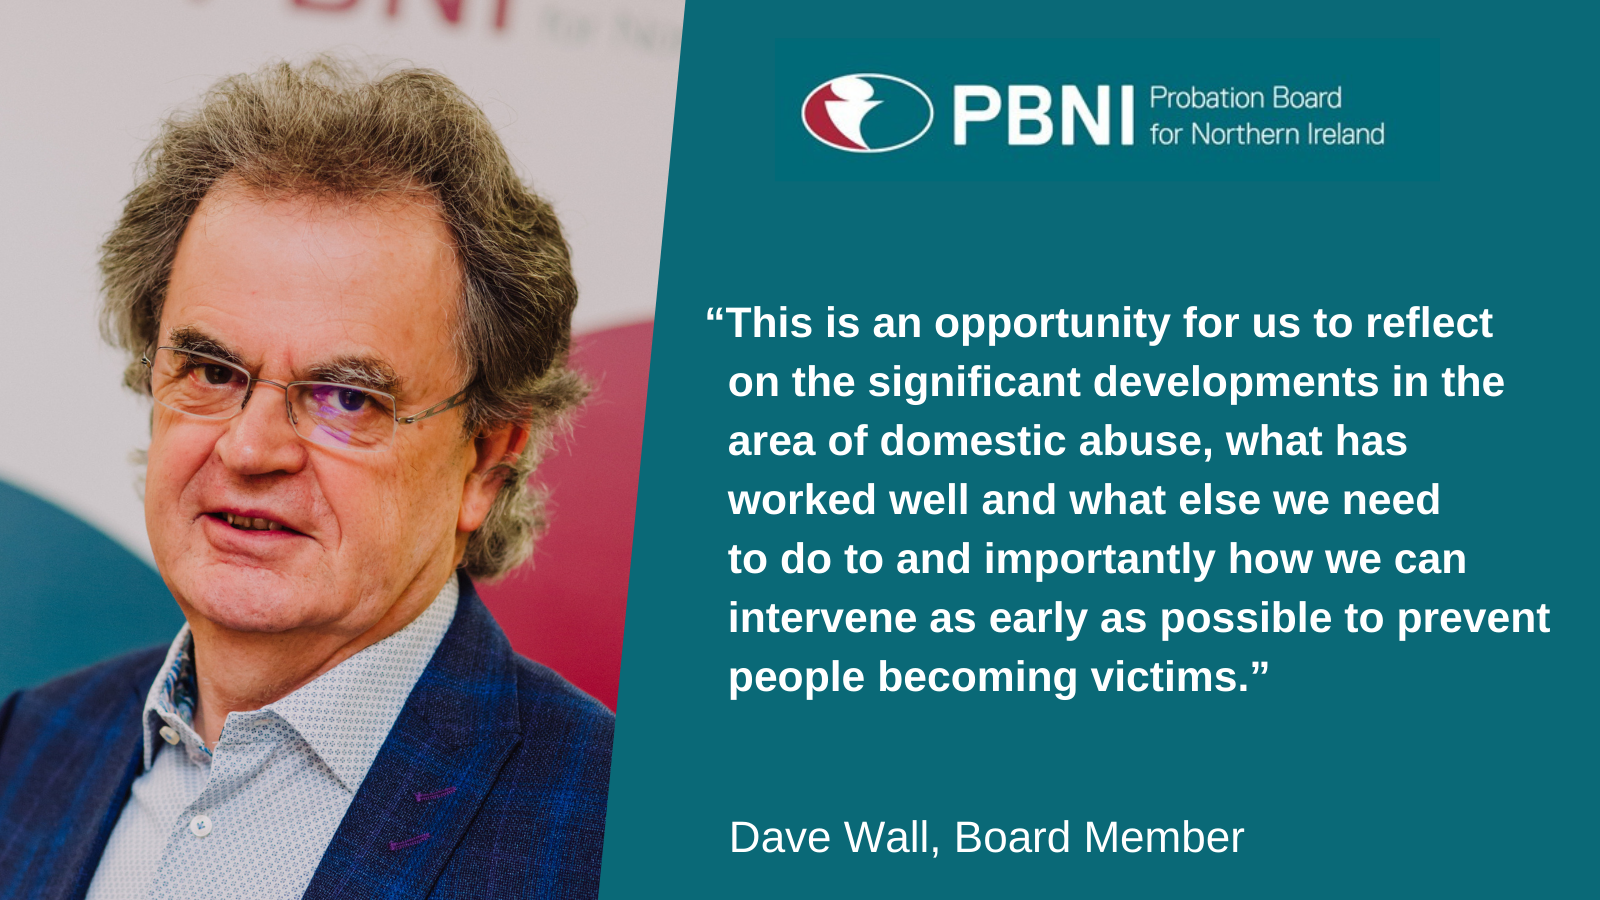 "Dave Wall Board member said ""This is an opportunity for us to reflect on the significant developments in the area of domestic abuse, what has worked well and what else we need to do to and importantly how we can intervene as early as possible to prevent people becoming victims."""